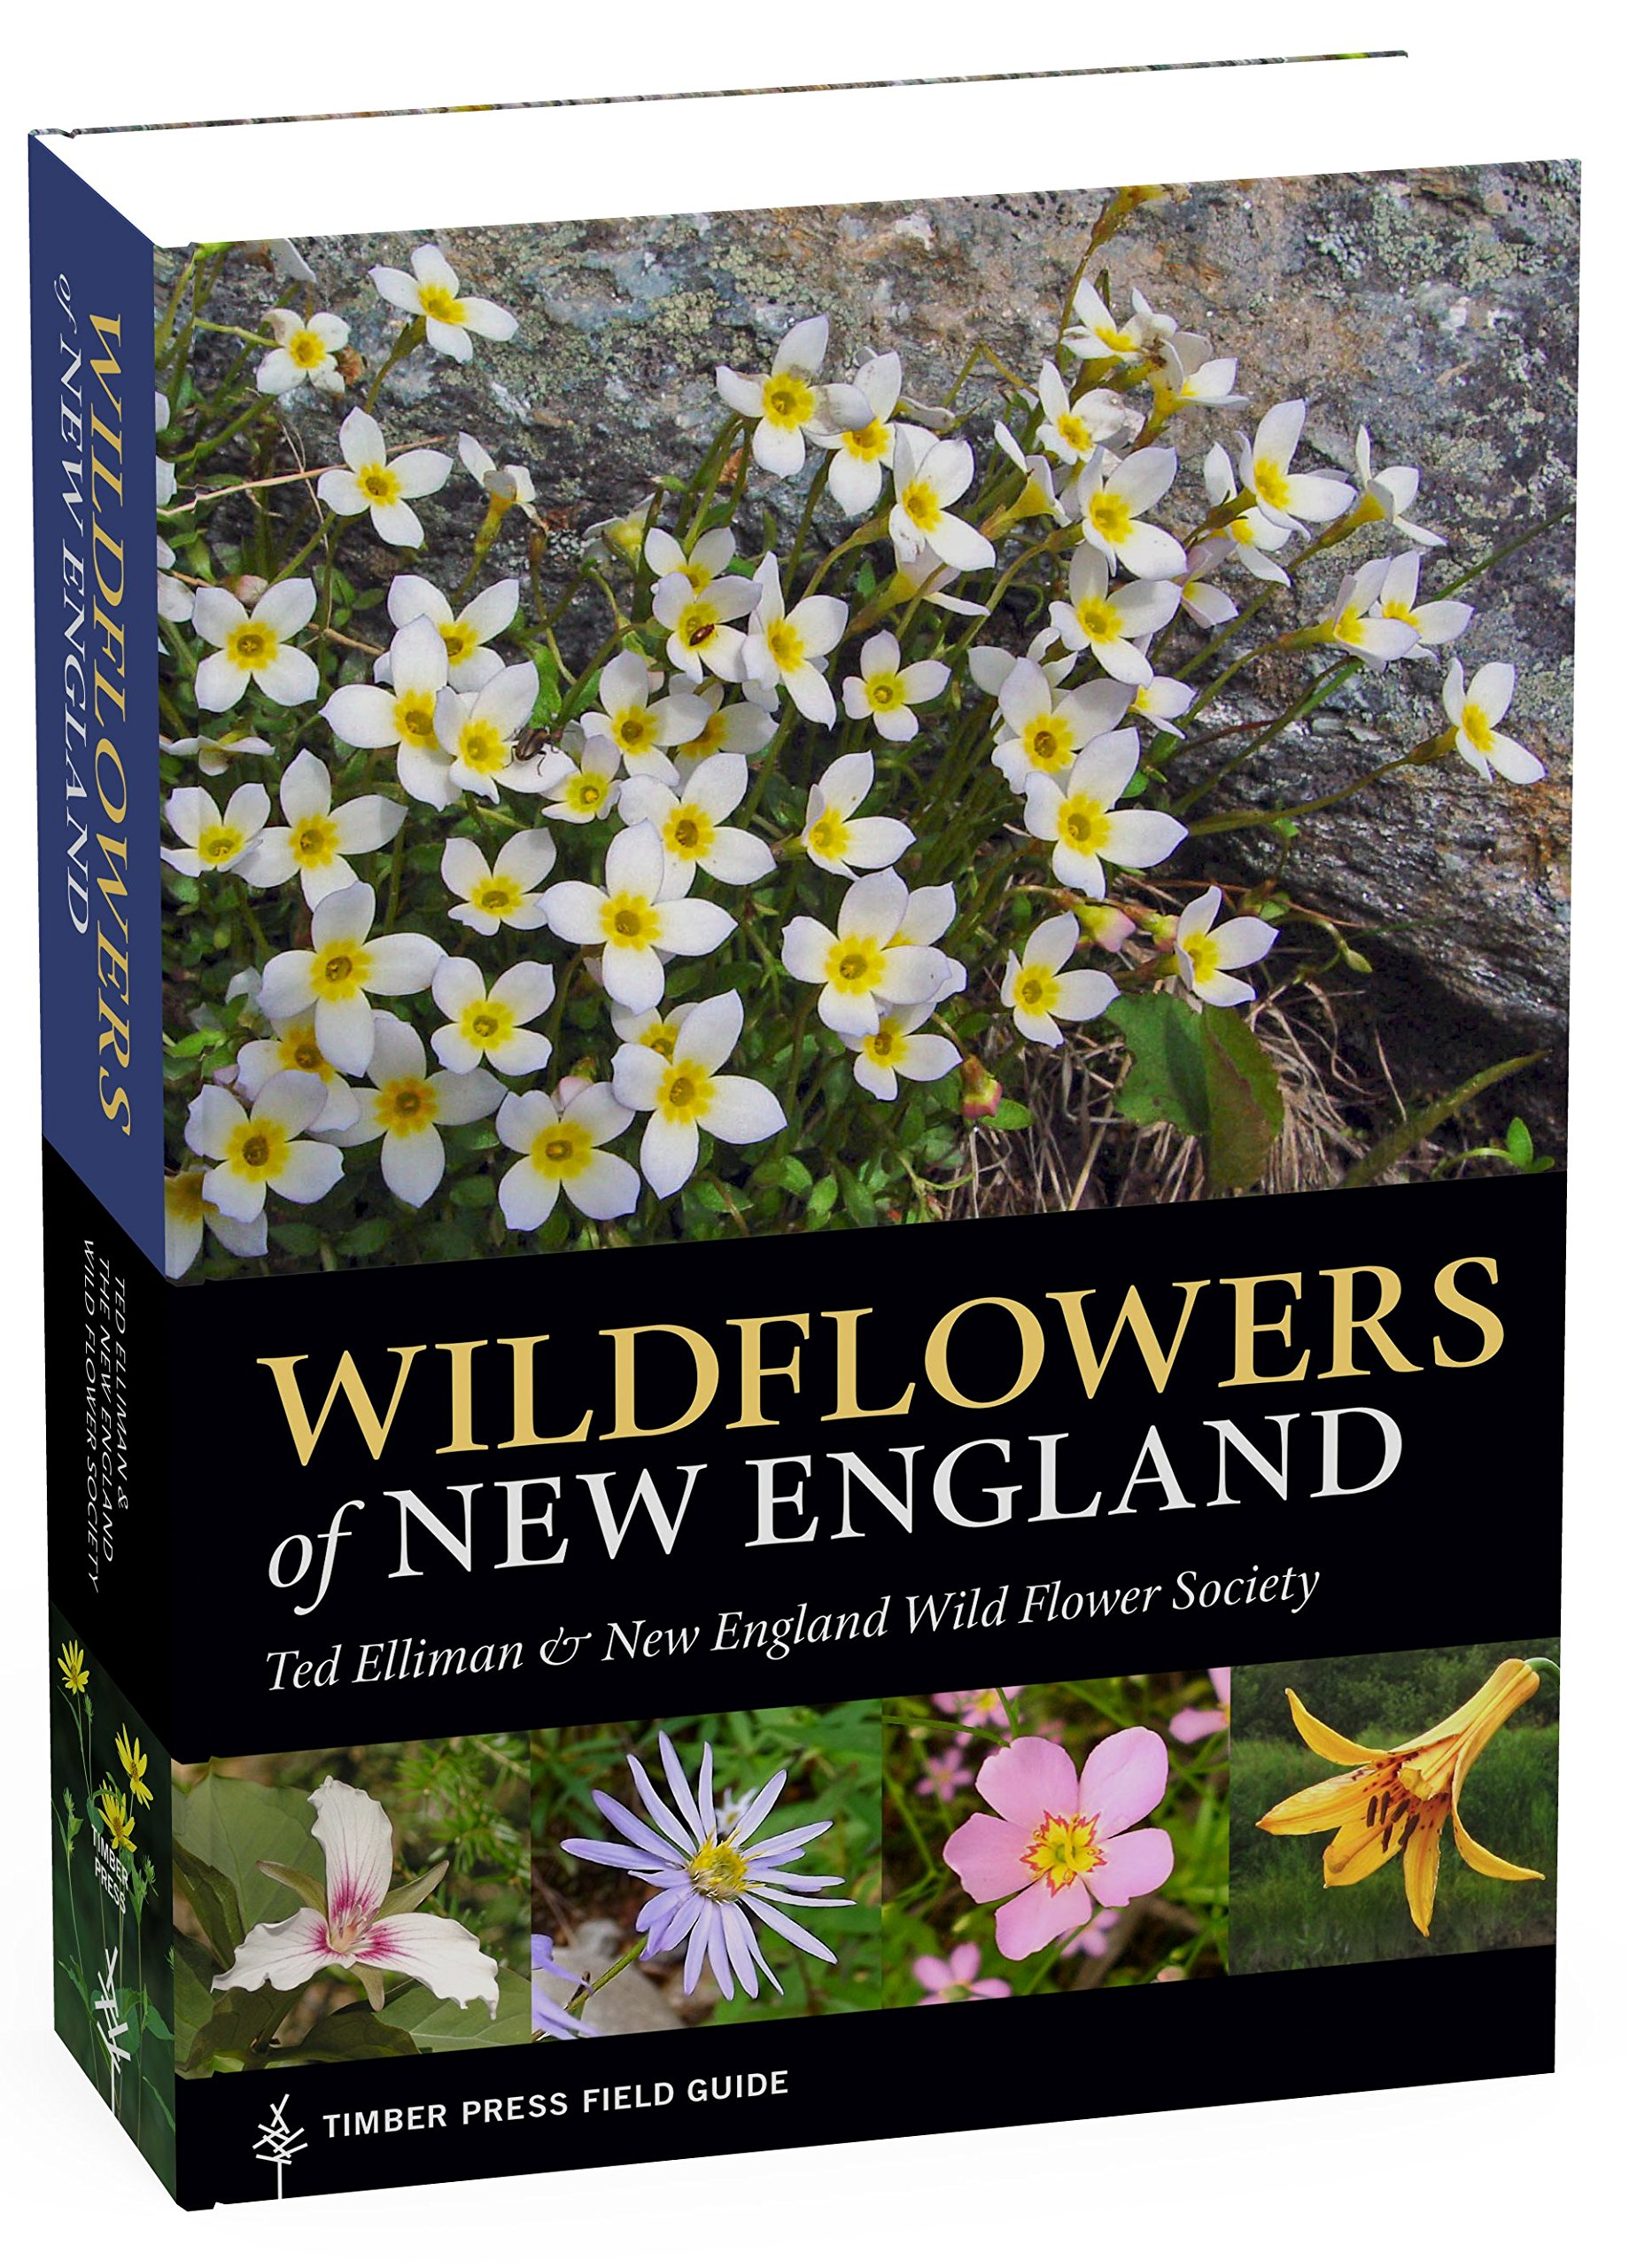 Wildflowers of New England (A Timber Press Field Guide): Ted Elliman, New  England Wild Flower Society: 9781604694642: Amazon.com: Books